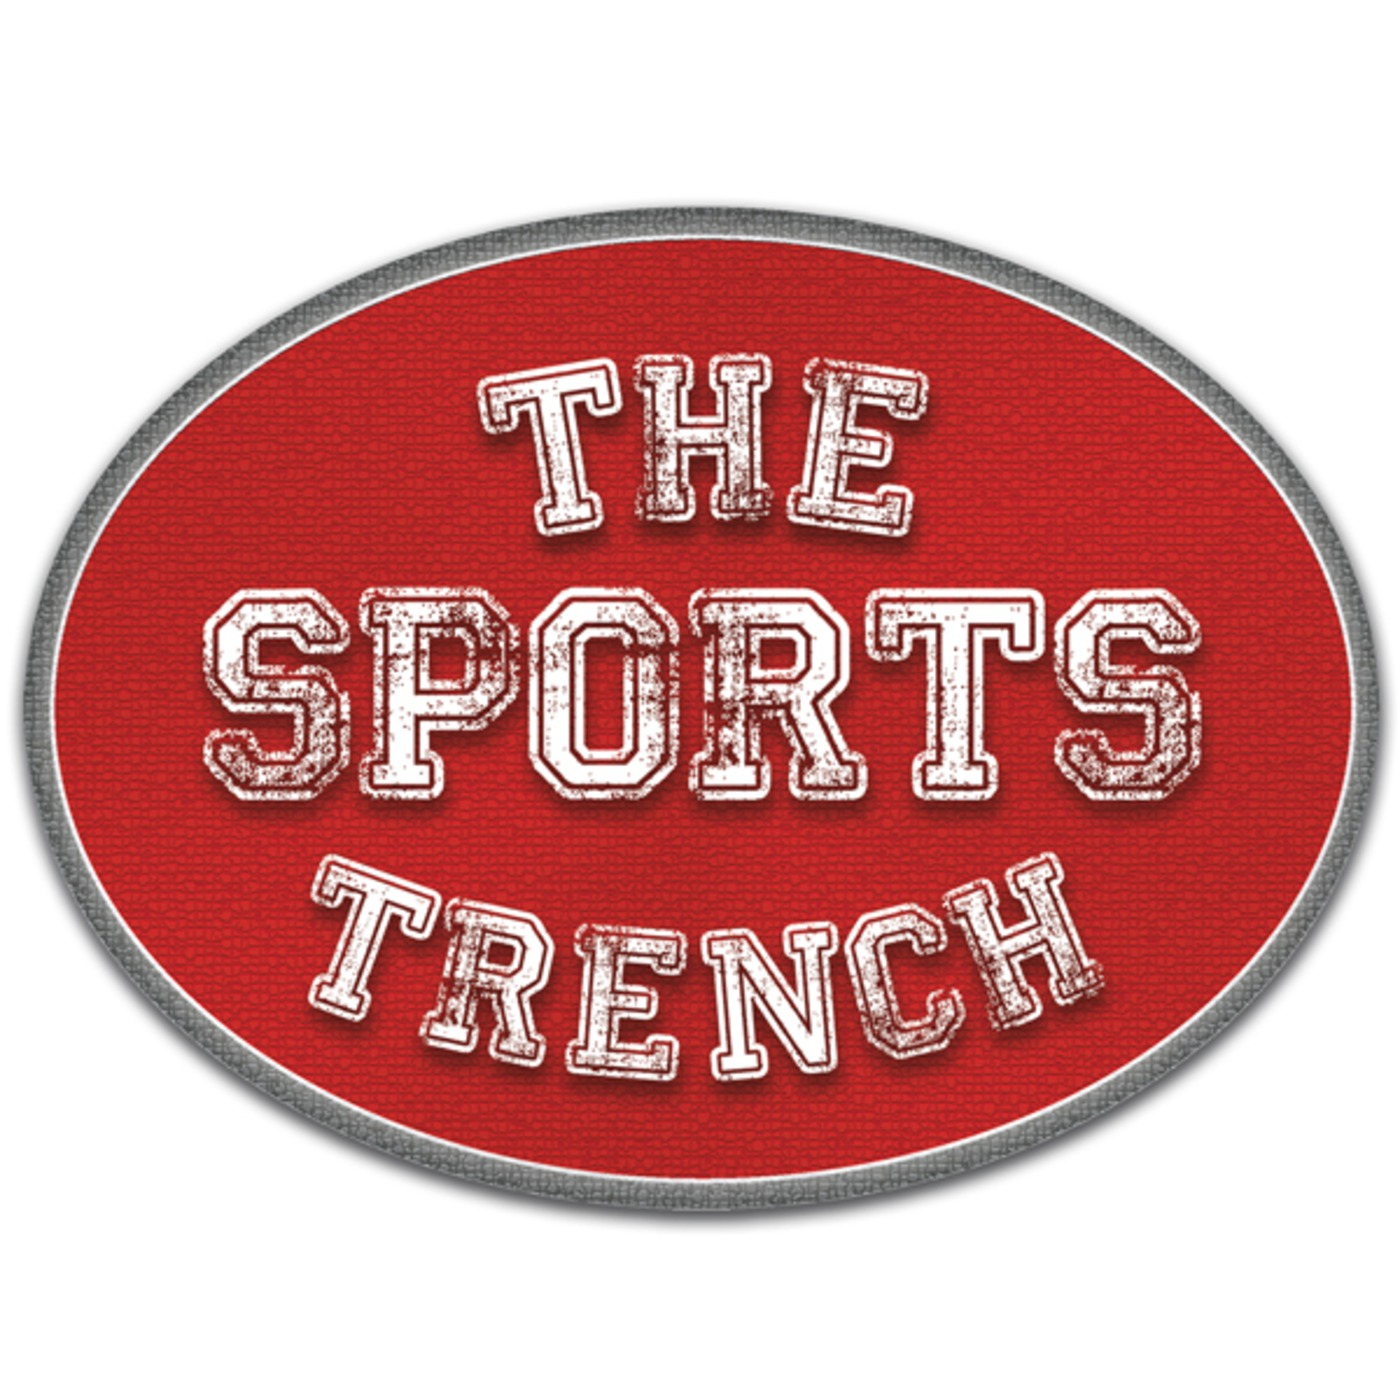 The Sports Trench NRL Edition